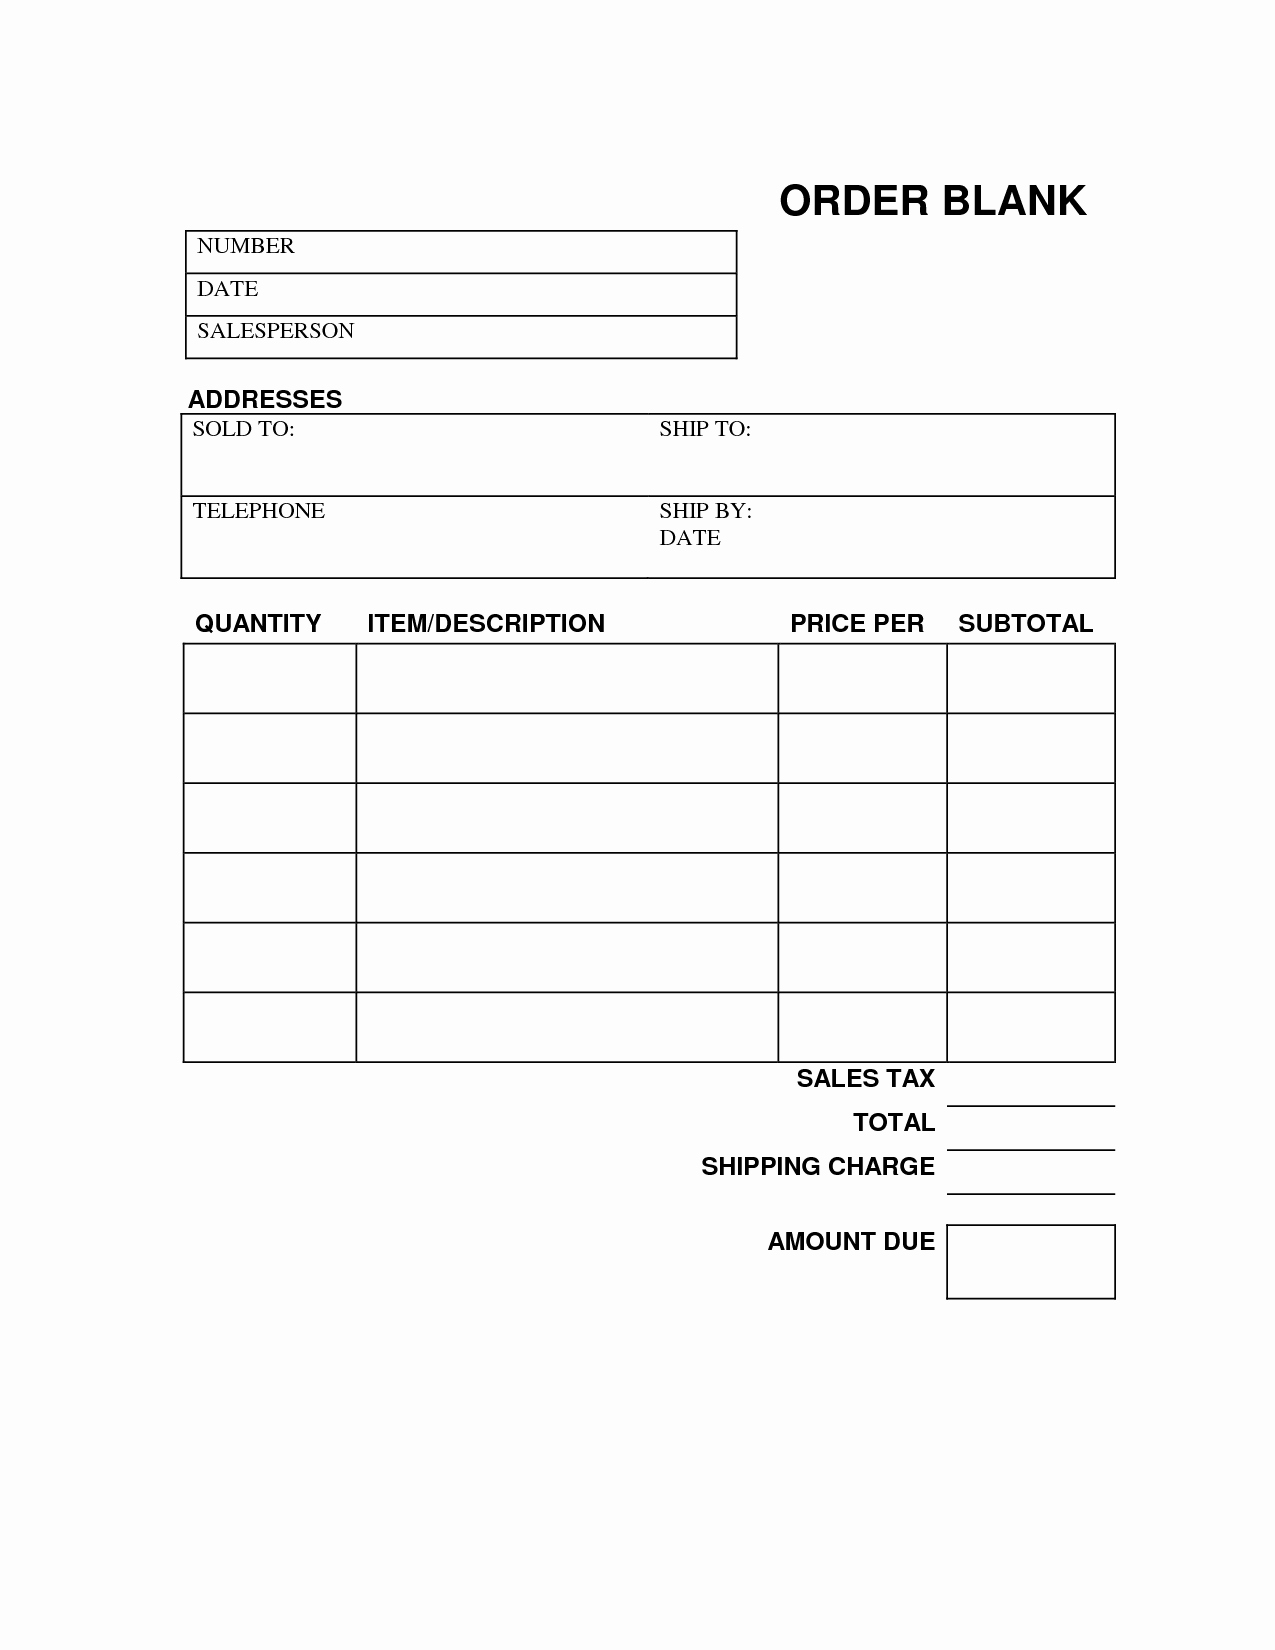 Blank order form Template Excel Lovely Blank order form Printable